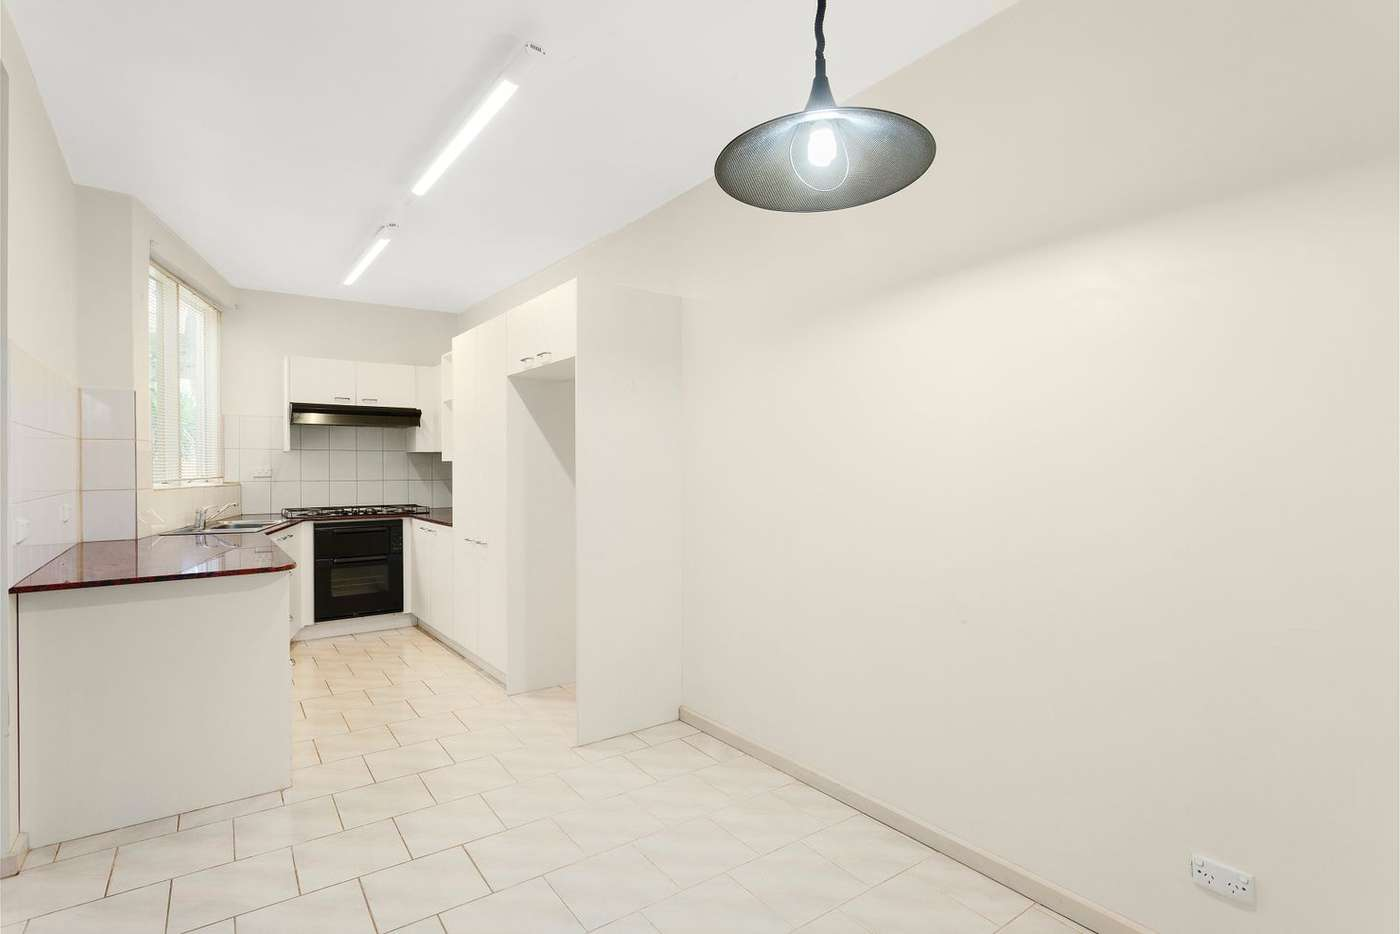 Fifth view of Homely apartment listing, 2/37-39 Fisher Street, Malvern East VIC 3145